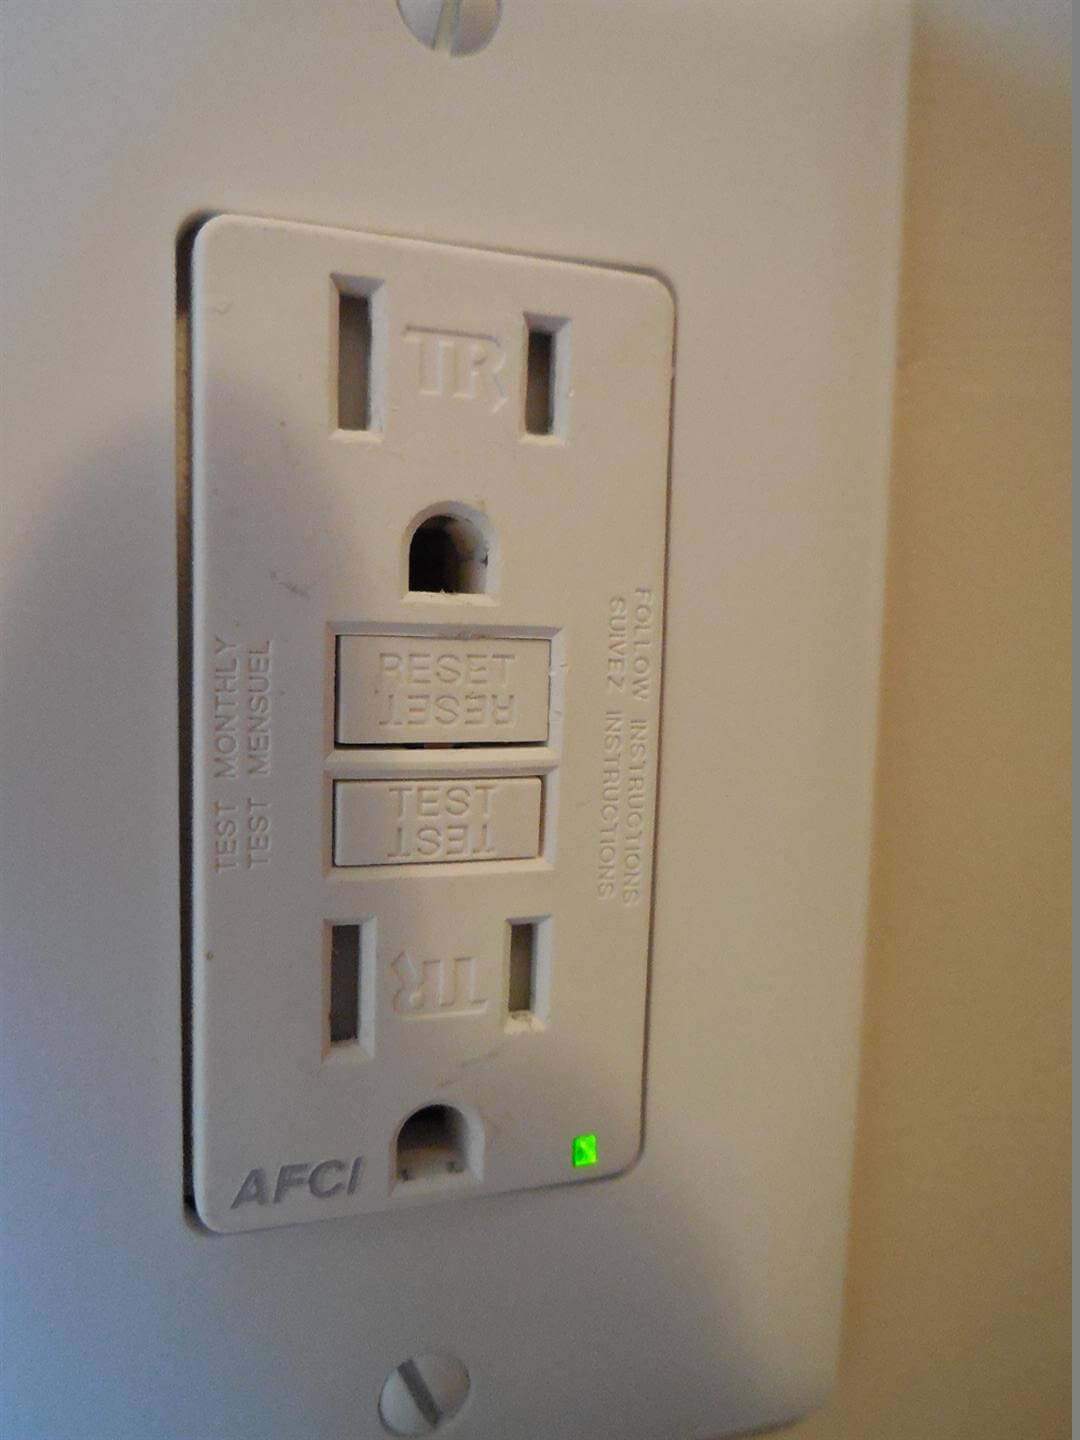 New Electrical Safety Requirement Afci Protection For Replacement How To Wire Outlets In Series